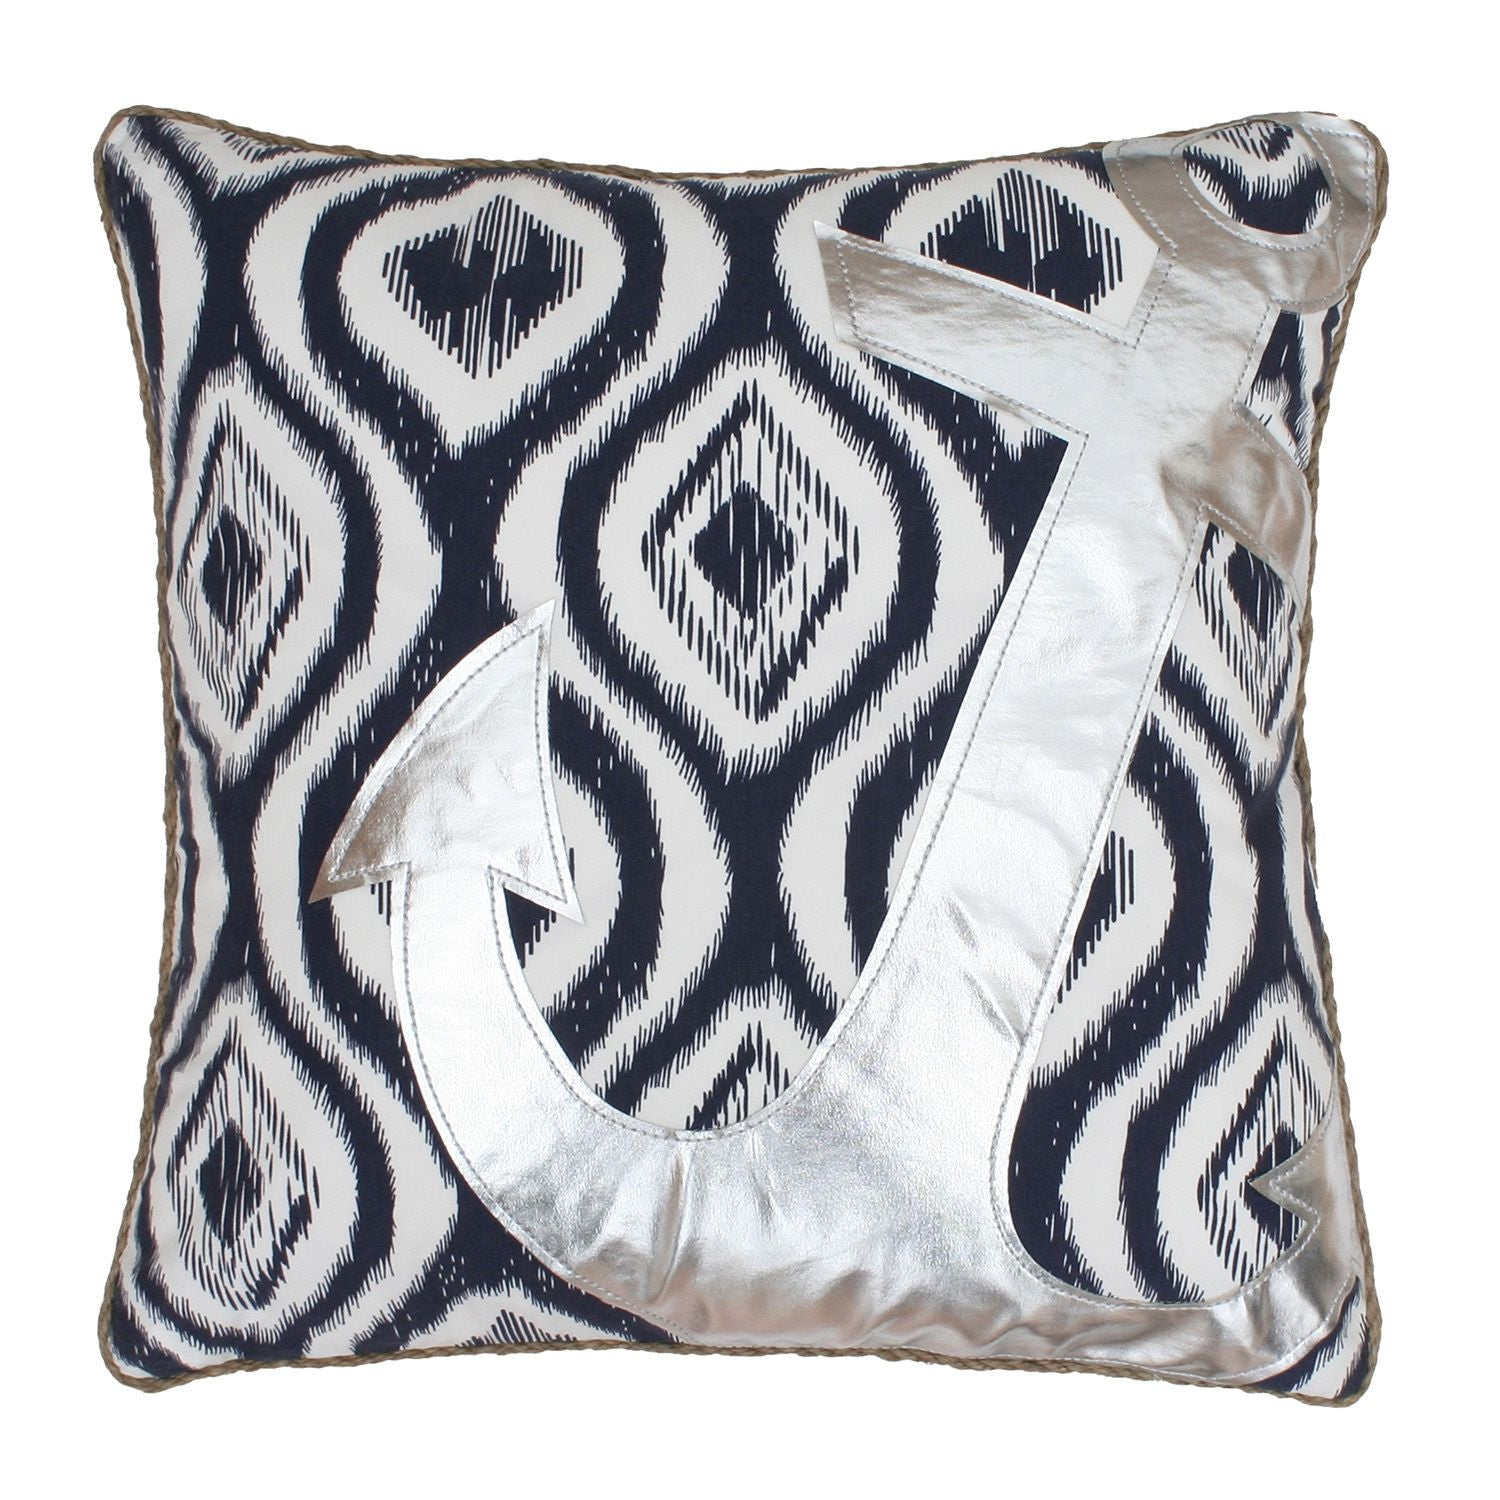 Ali Anchor Appliqué Pillow